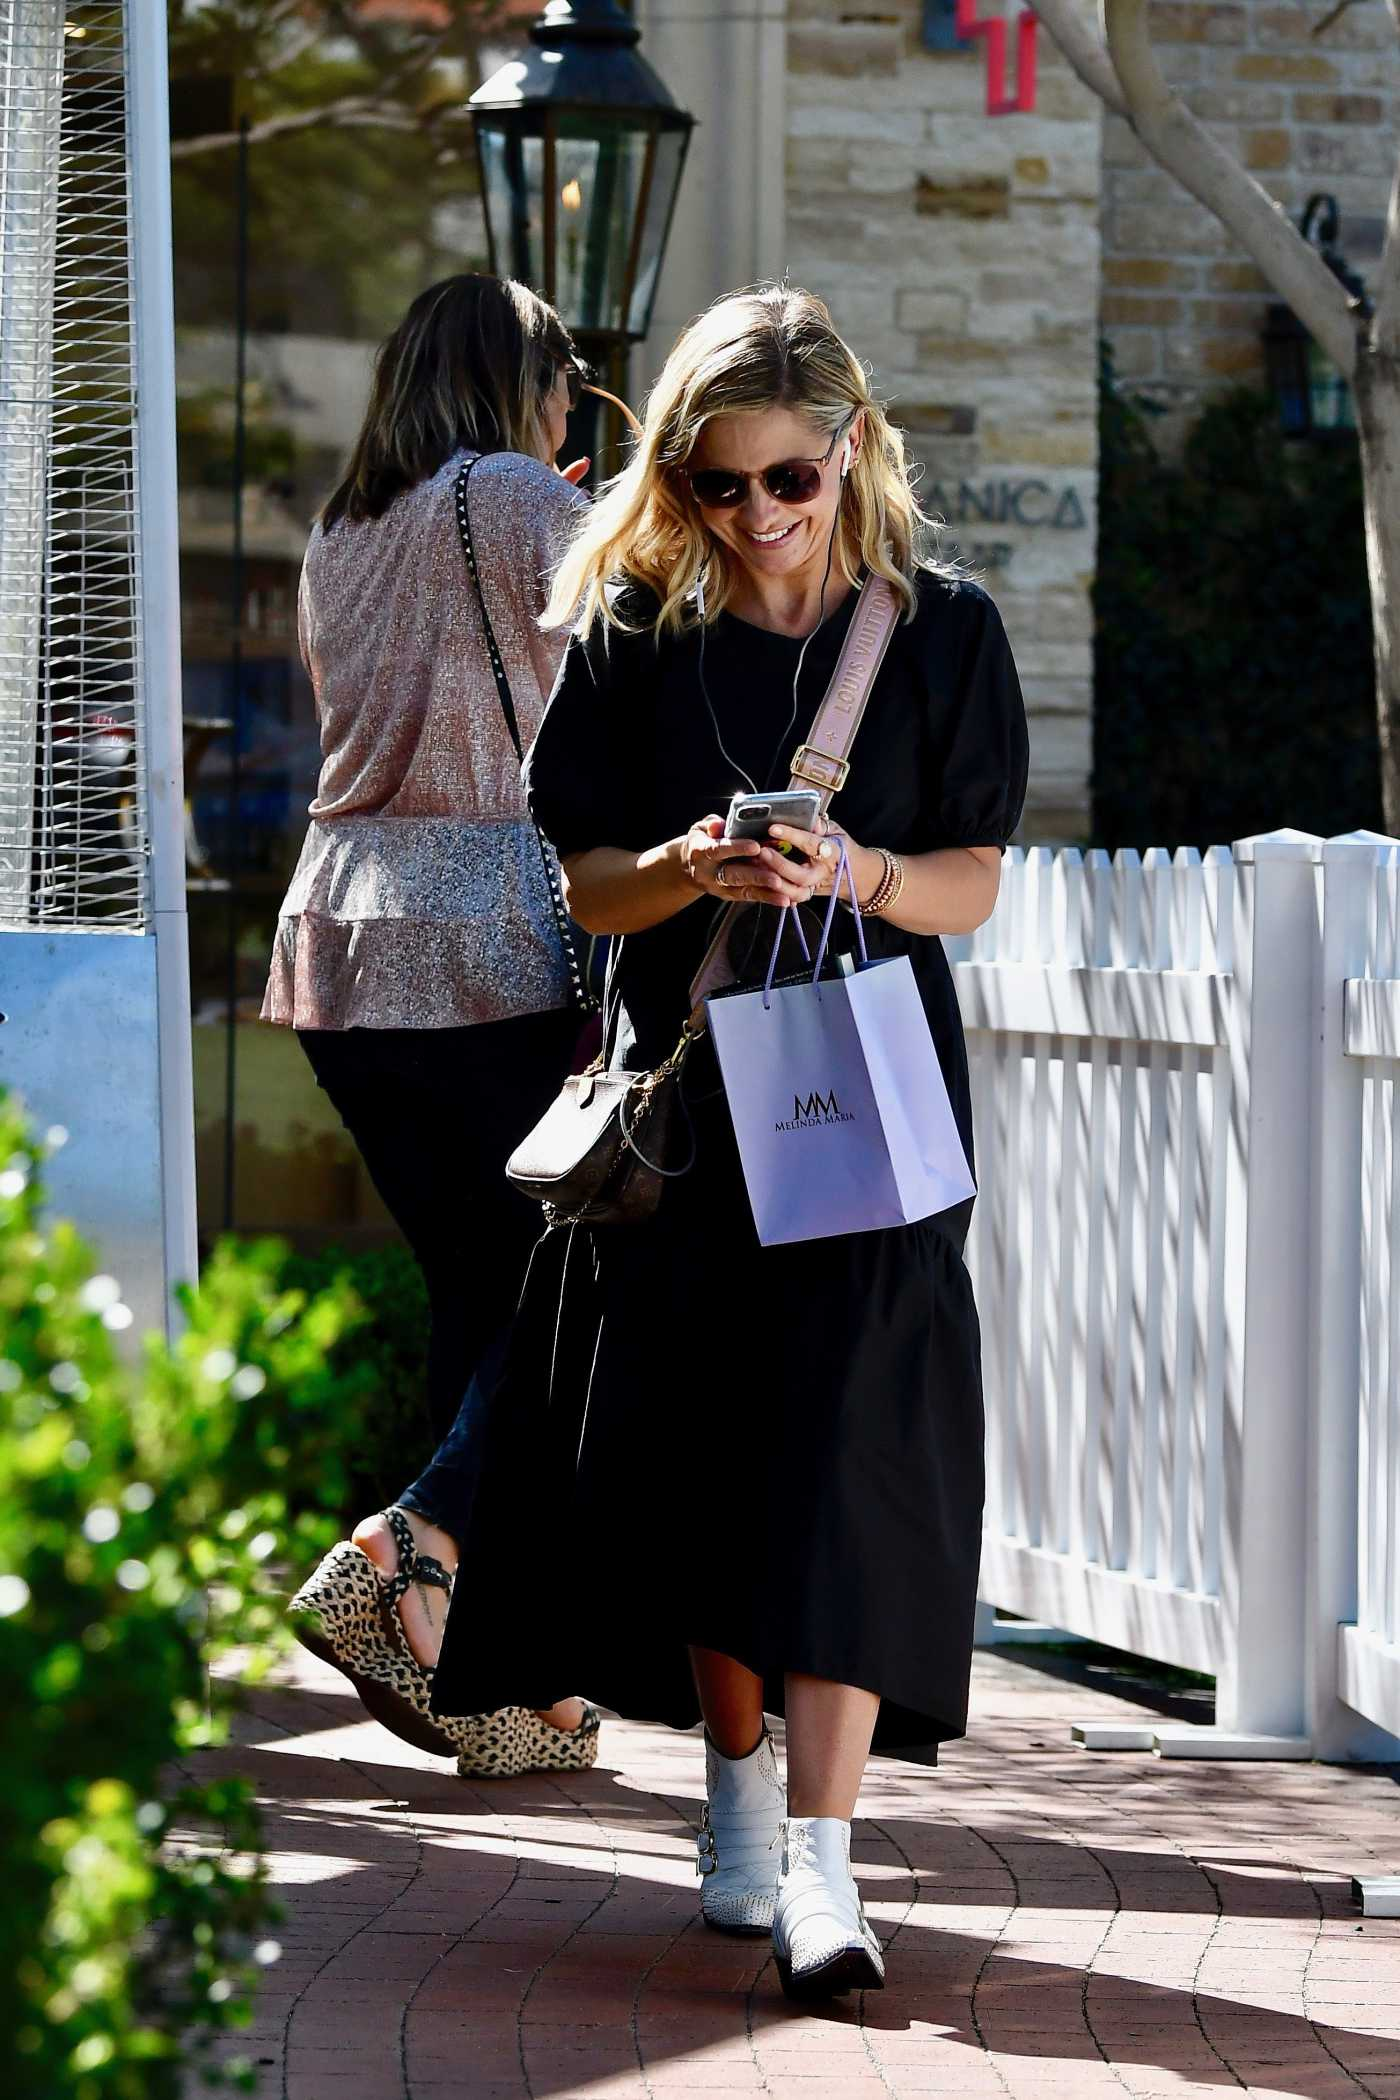 Sarah Michelle Gellar in a Black Dress Was Seen Out in Los Angeles 10/09/2019